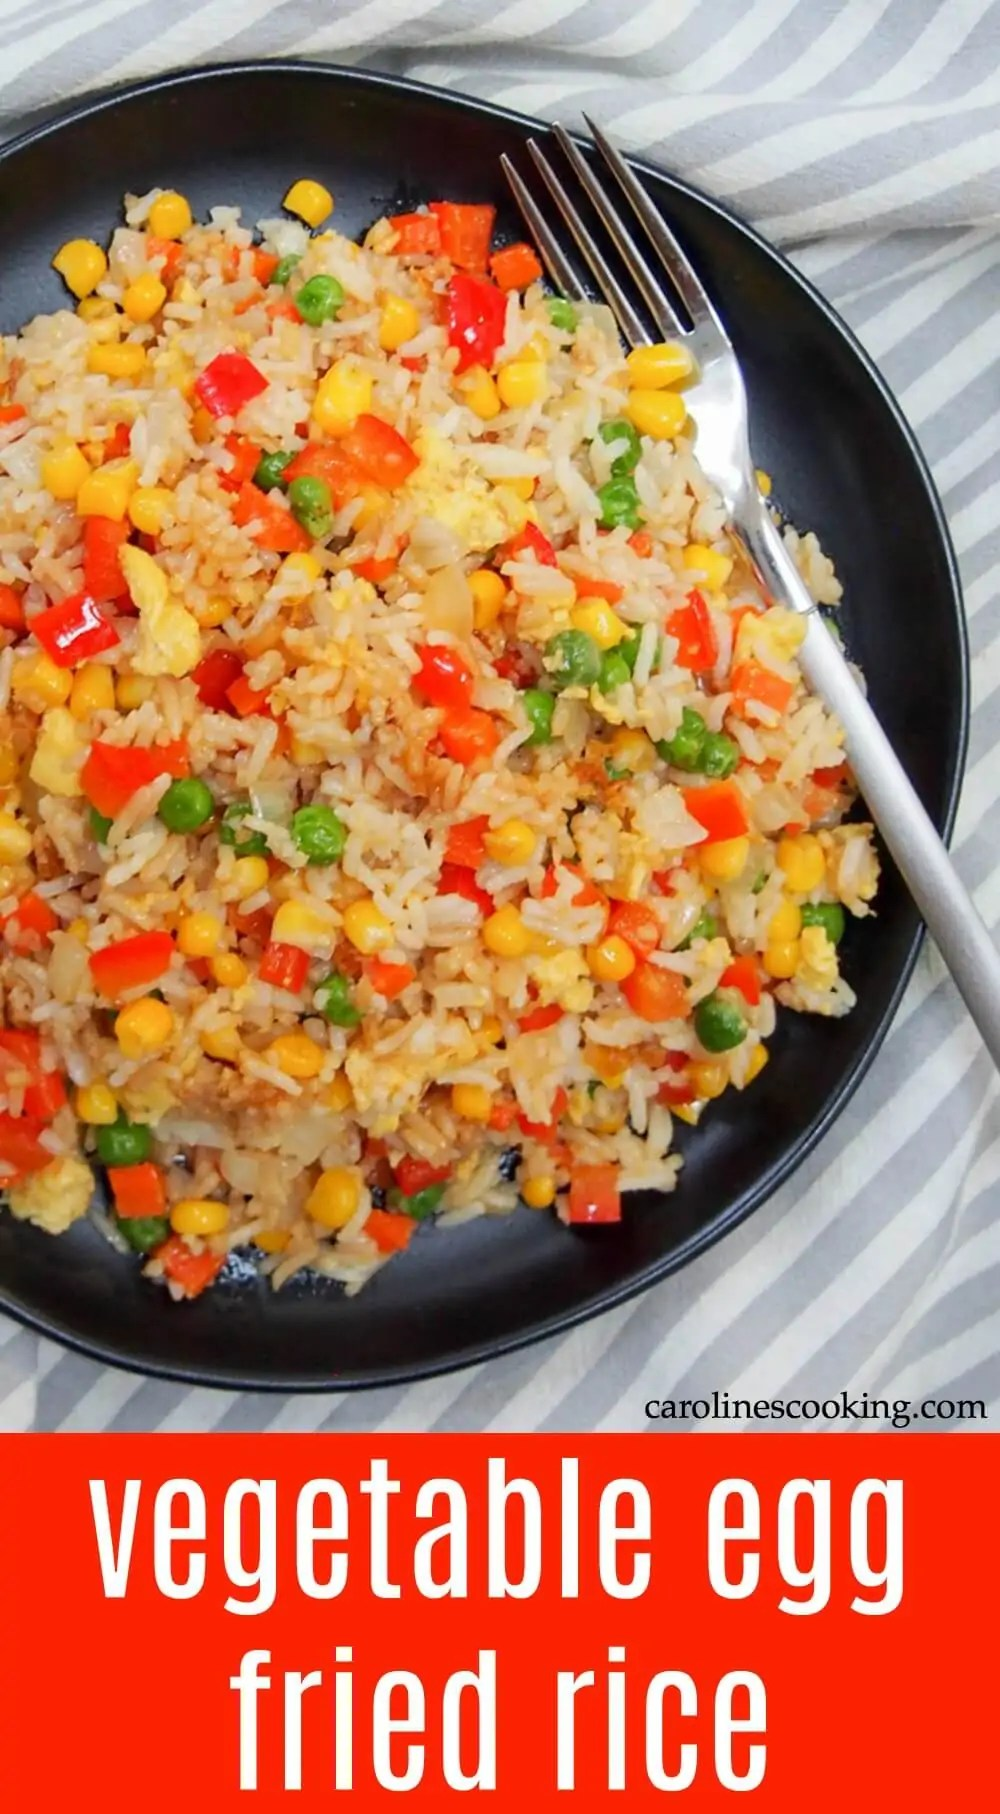 Loaded with vegetables (that you probably have hanging around the house anyway), vegetable egg fried rice is such an easy, tasty, quick and filling meal. Perfect any night! #vegetarian #chinesefood #friedrice